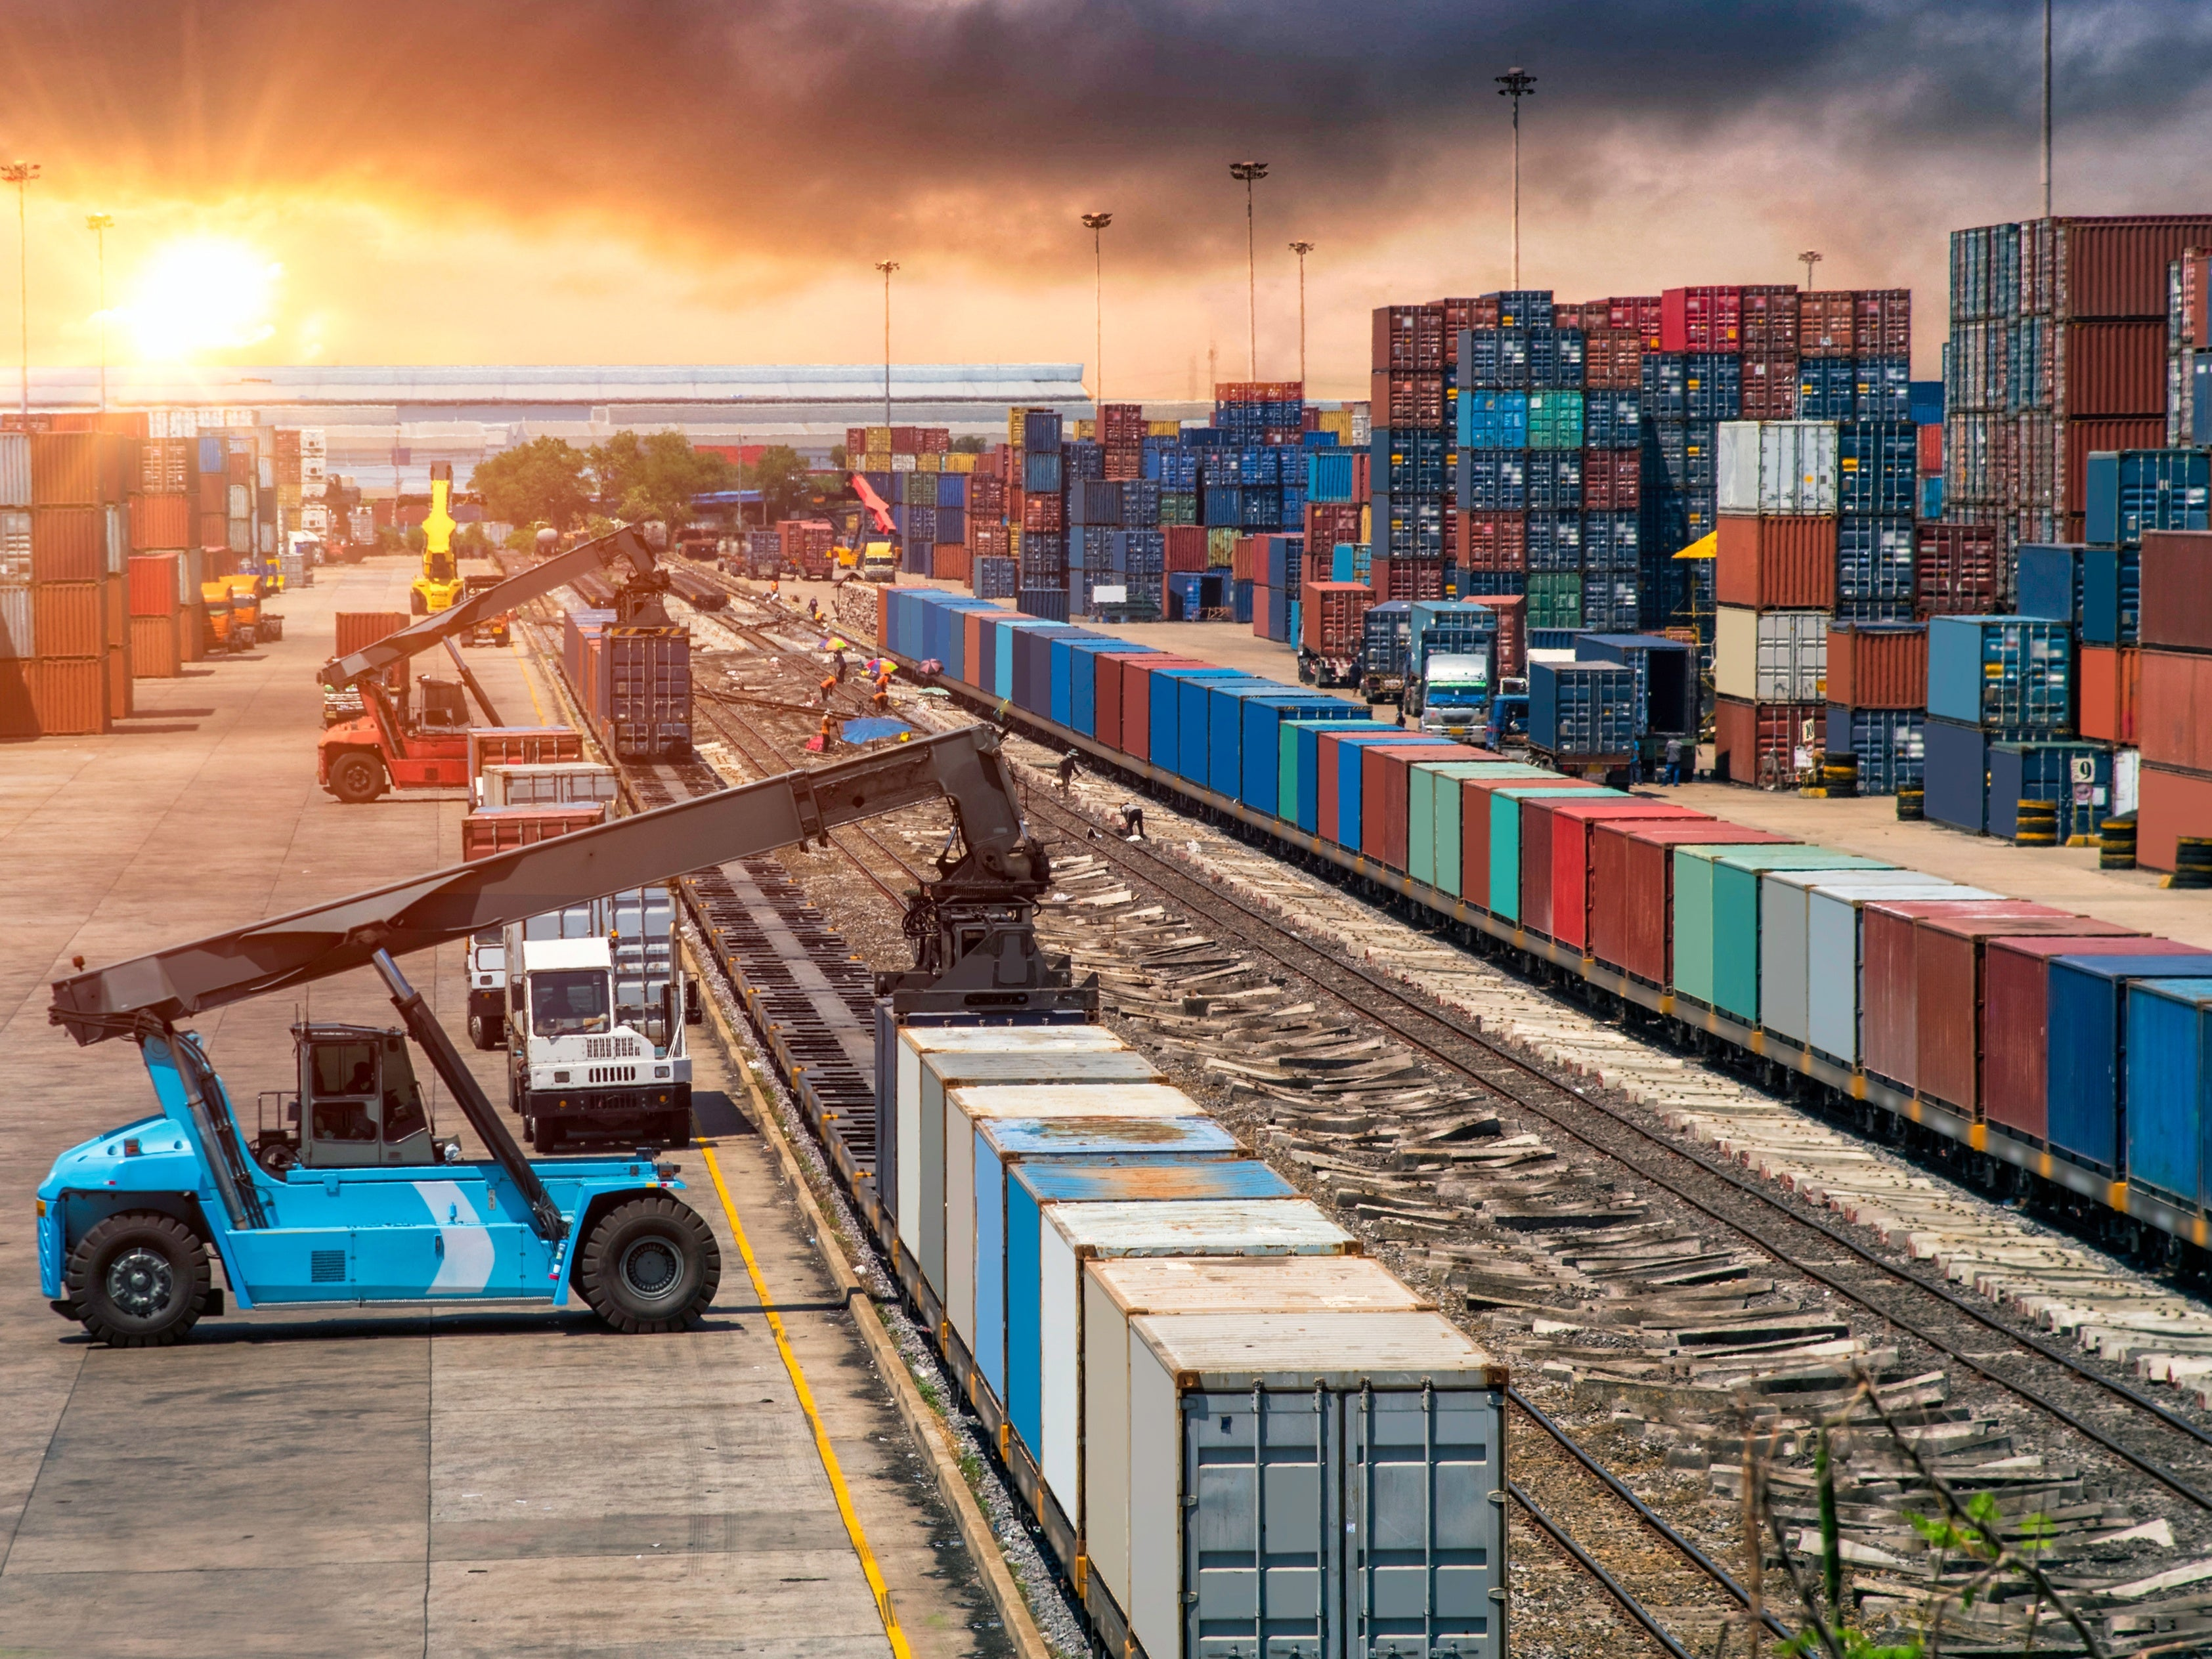 Invoking force majeure under your transport contract: Are you protected when things go off the rails?